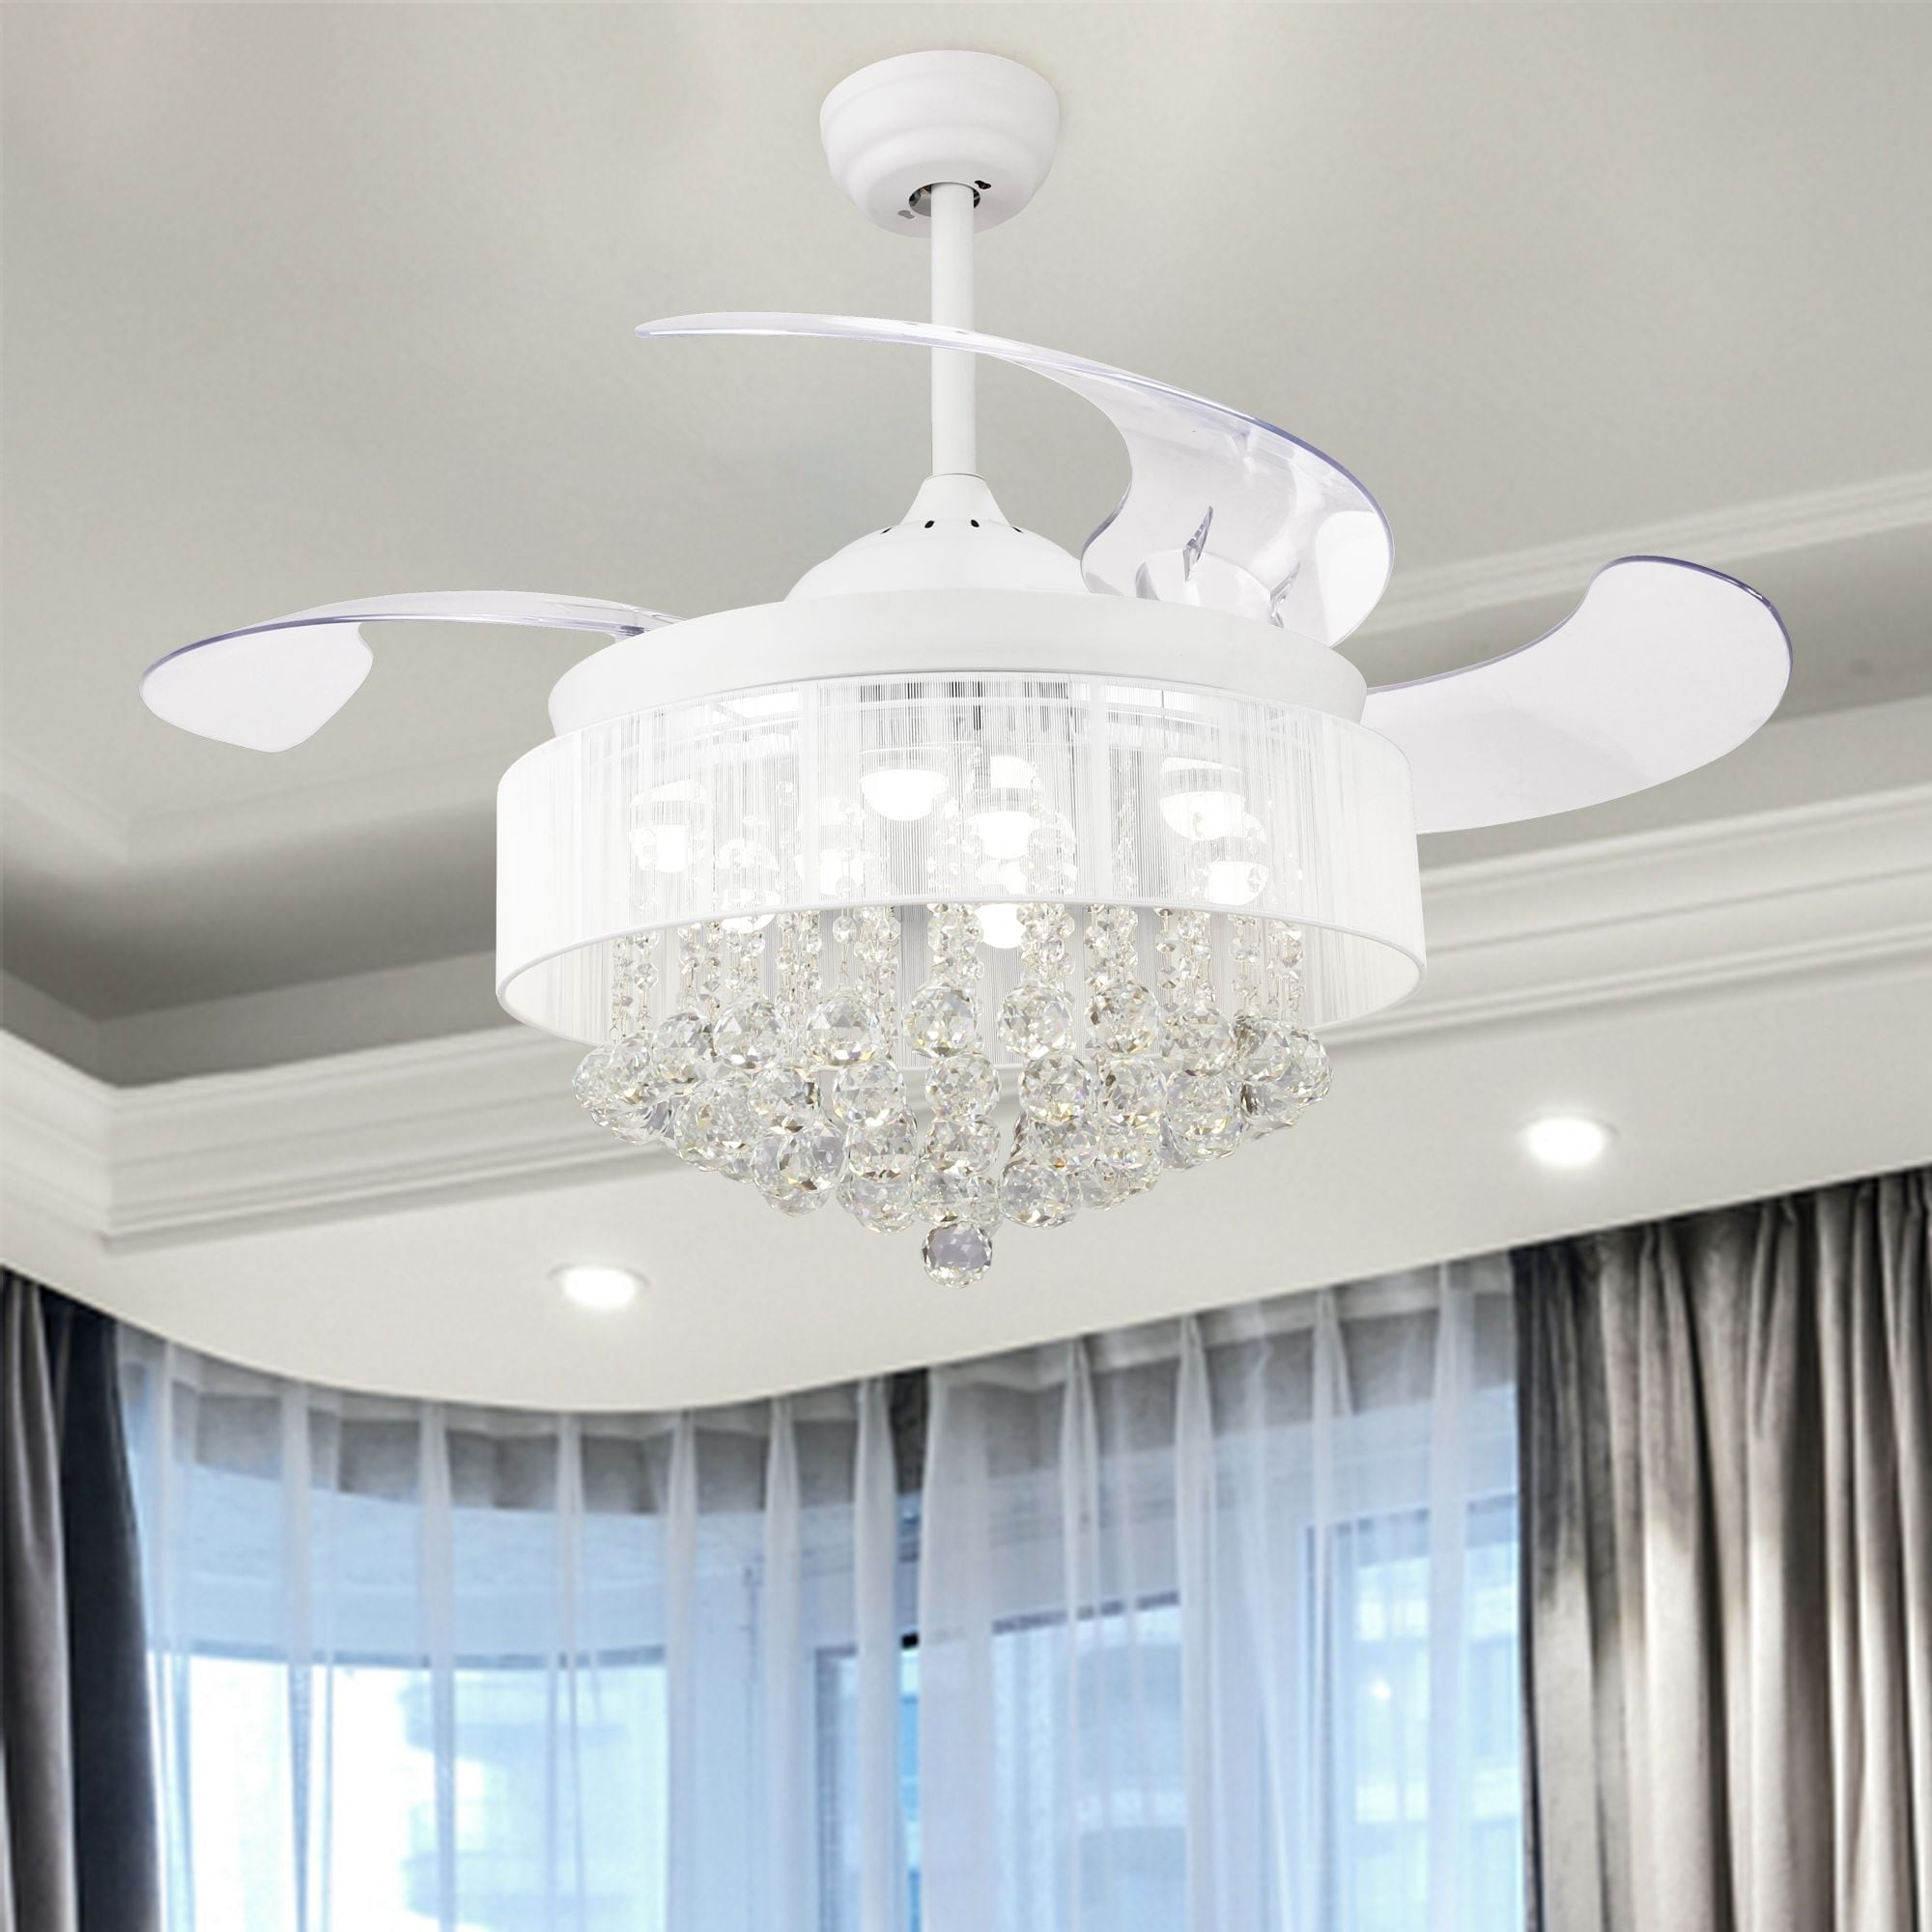 42 Inch Foldable 4 Blades Led Ceiling Fan Crystal Chandelier On Free Shipping Today 18088605